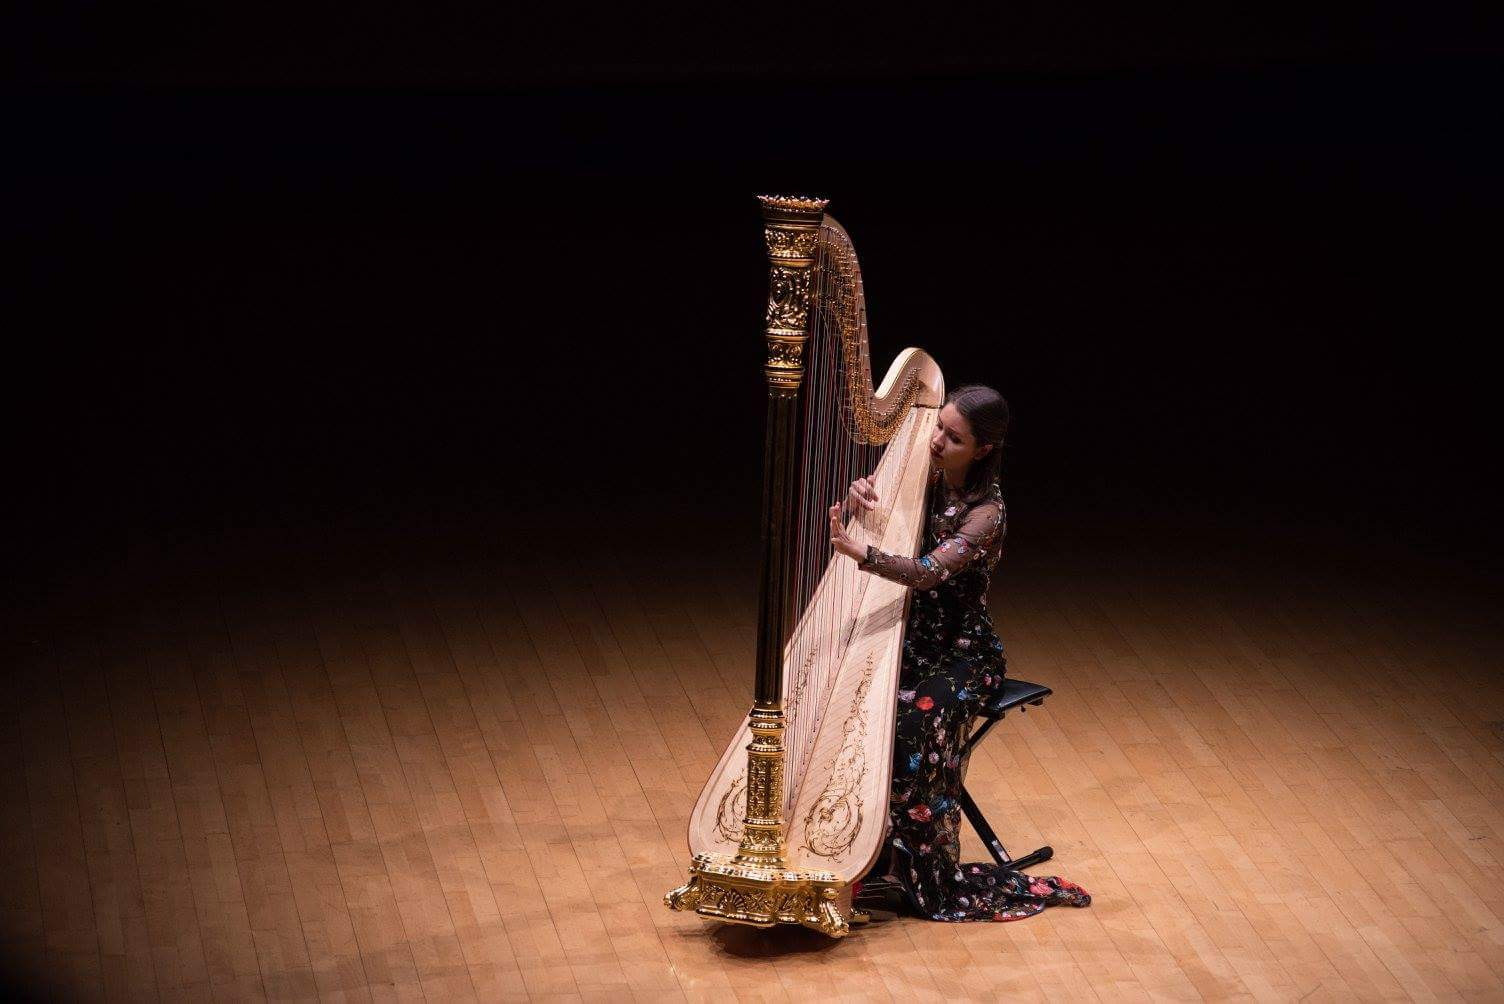 Performing at 2017 World Harp Congress in Hong Kong